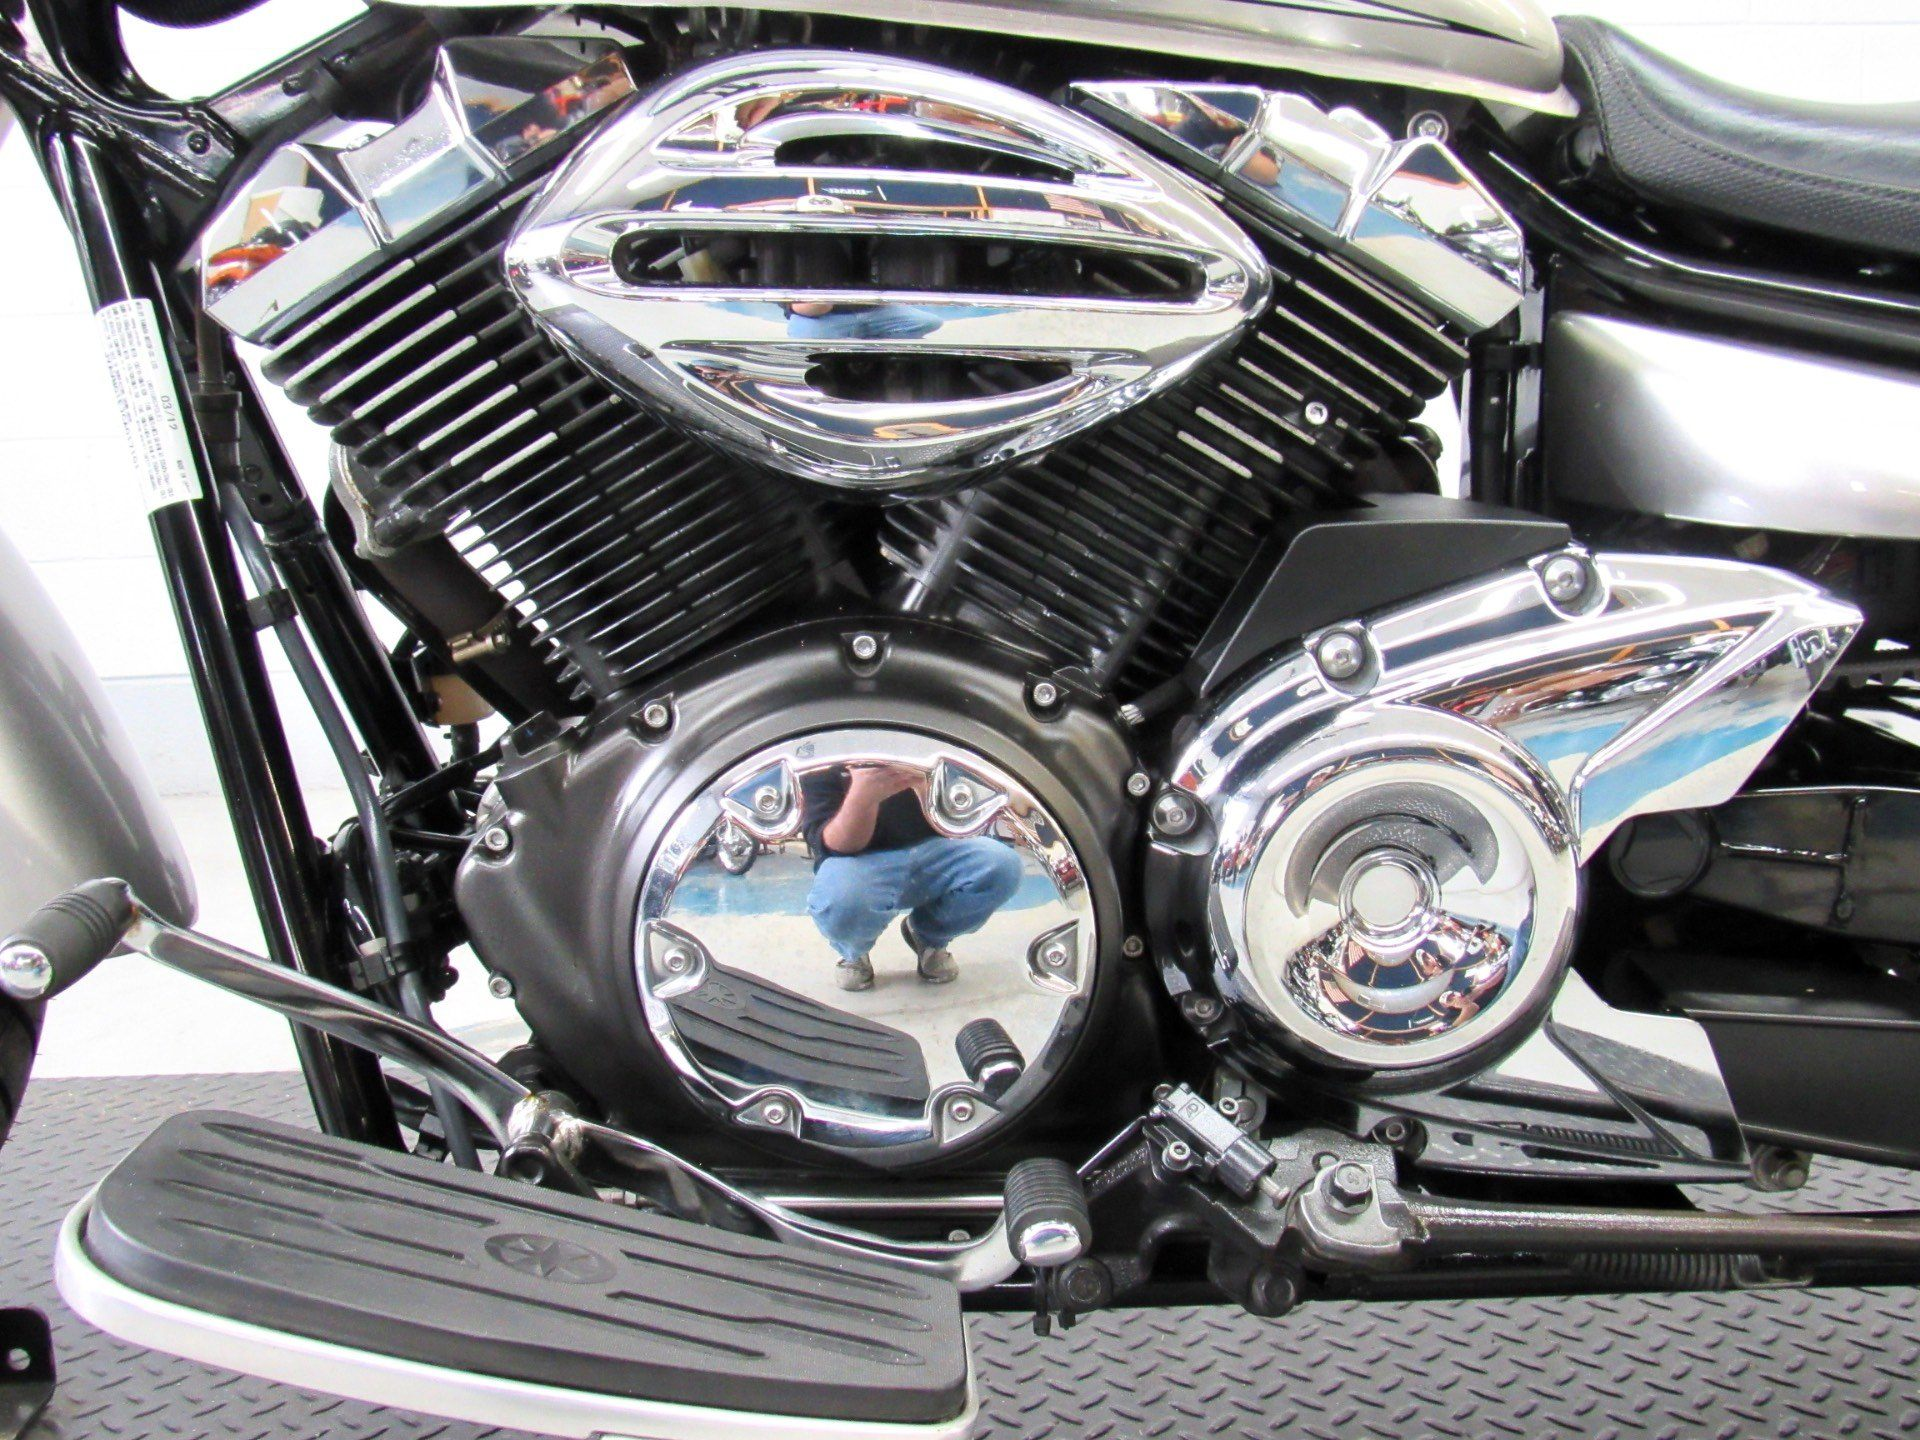 2012 Yamaha V Star 950  in Fredericksburg, Virginia - Photo 19